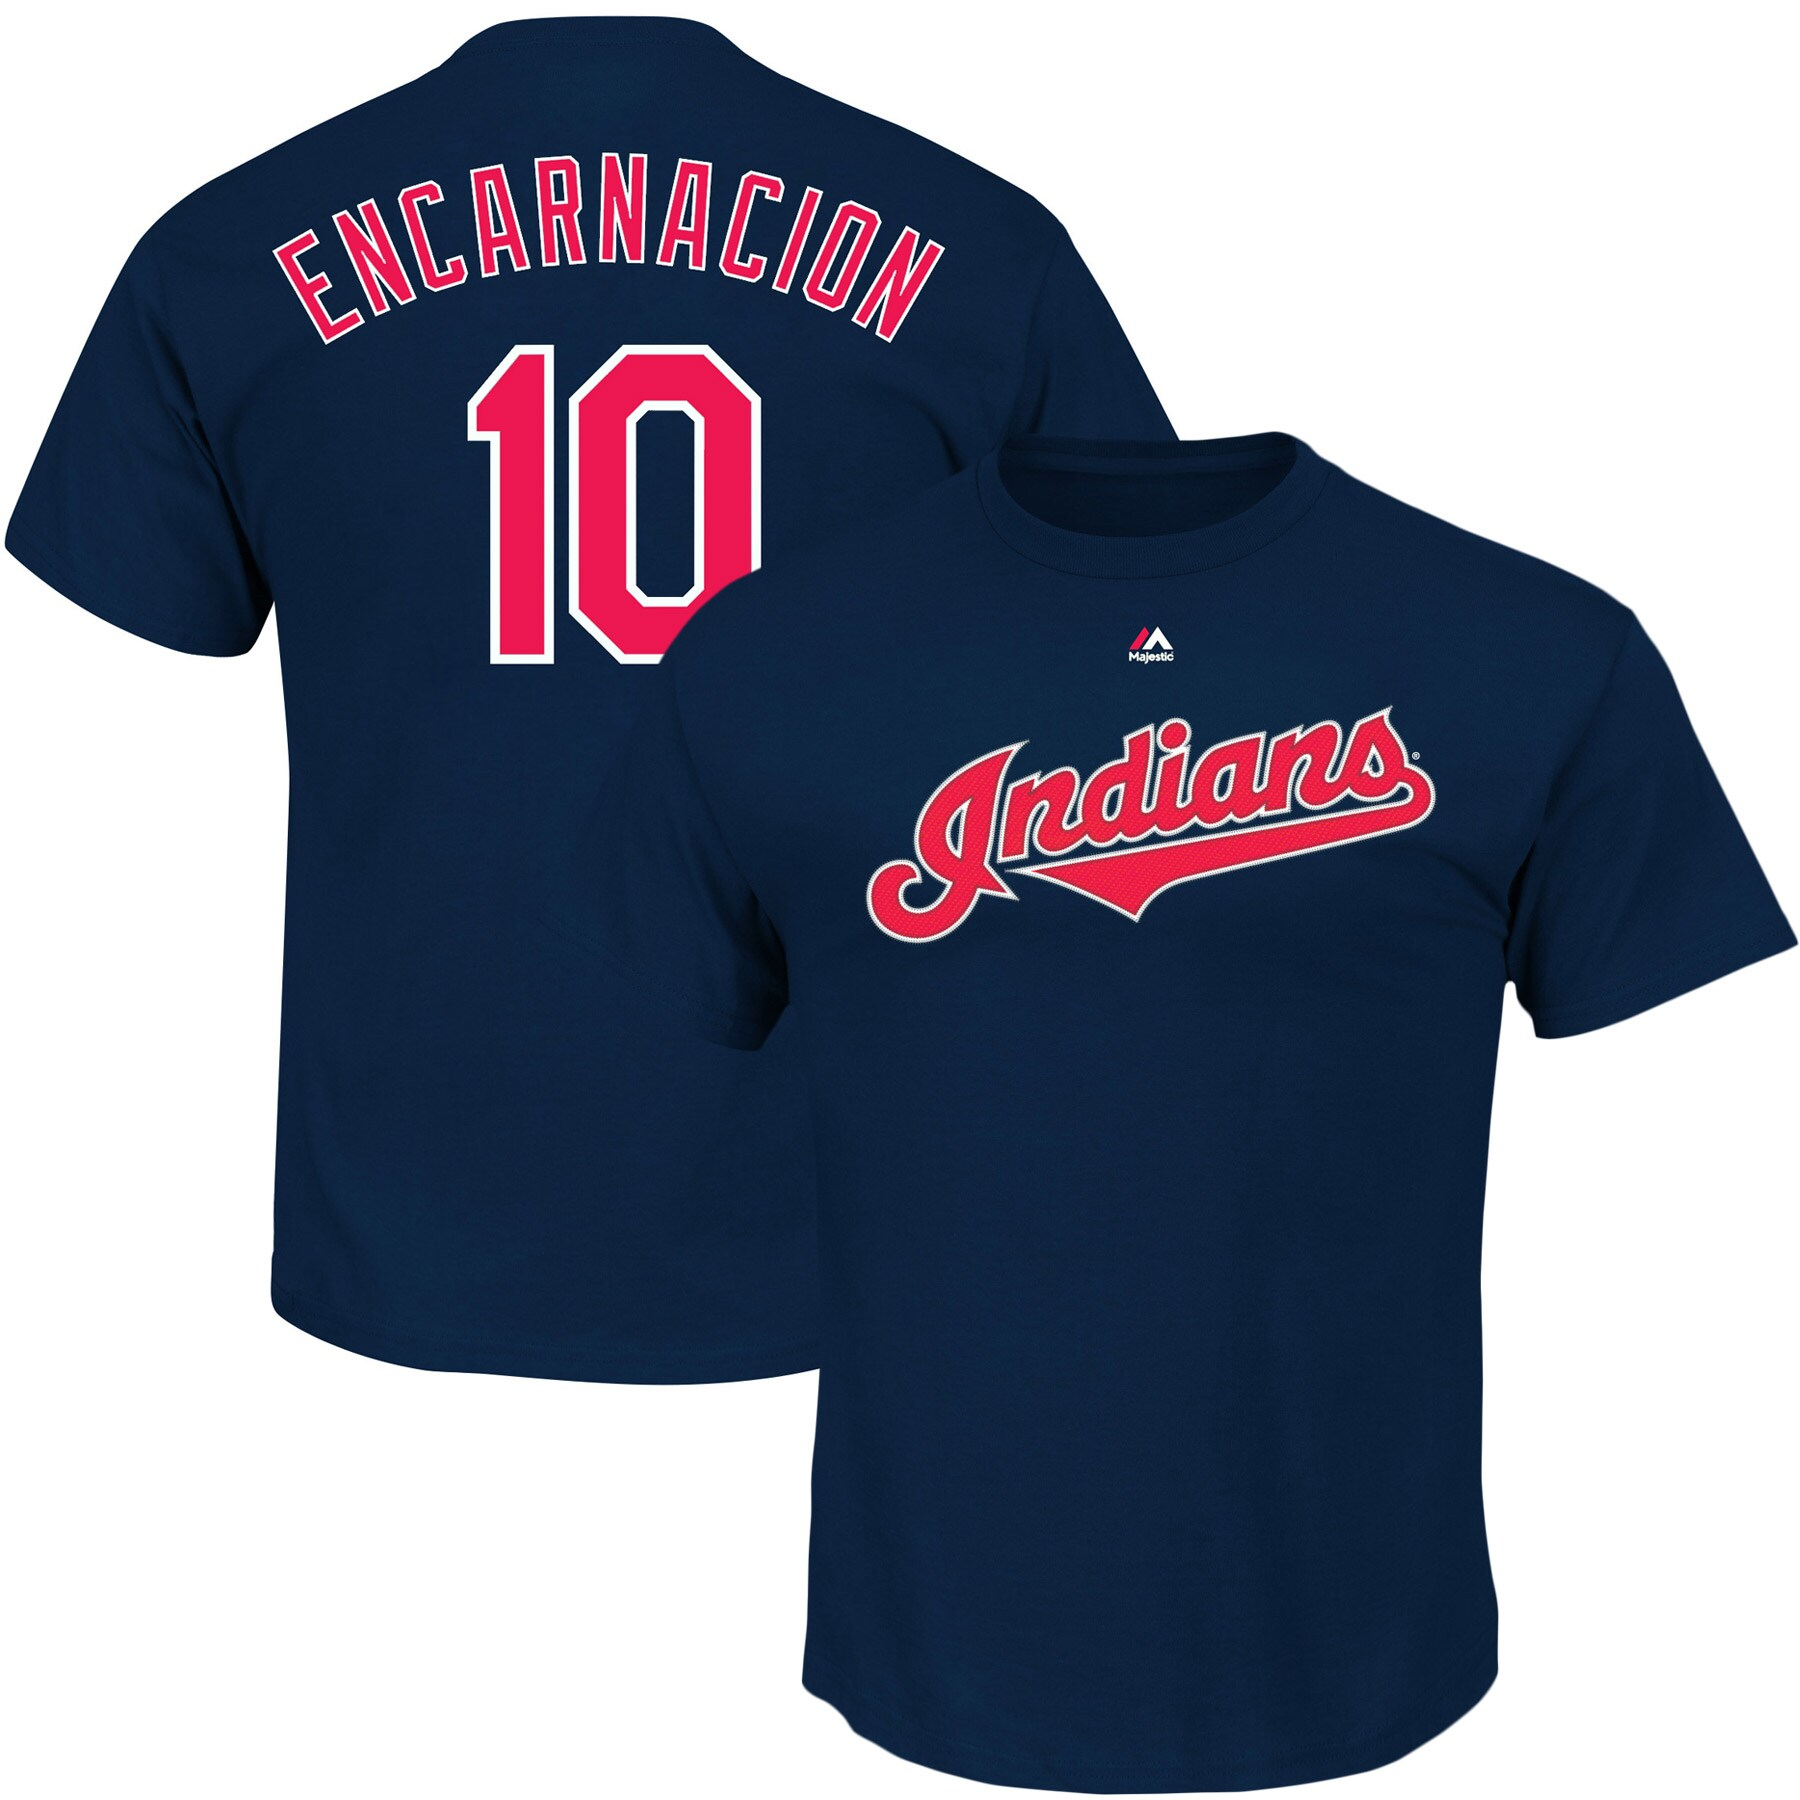 Edwin Encarnacion Cleveland Indians Majestic Official Name & Number T-Shirt - Navy